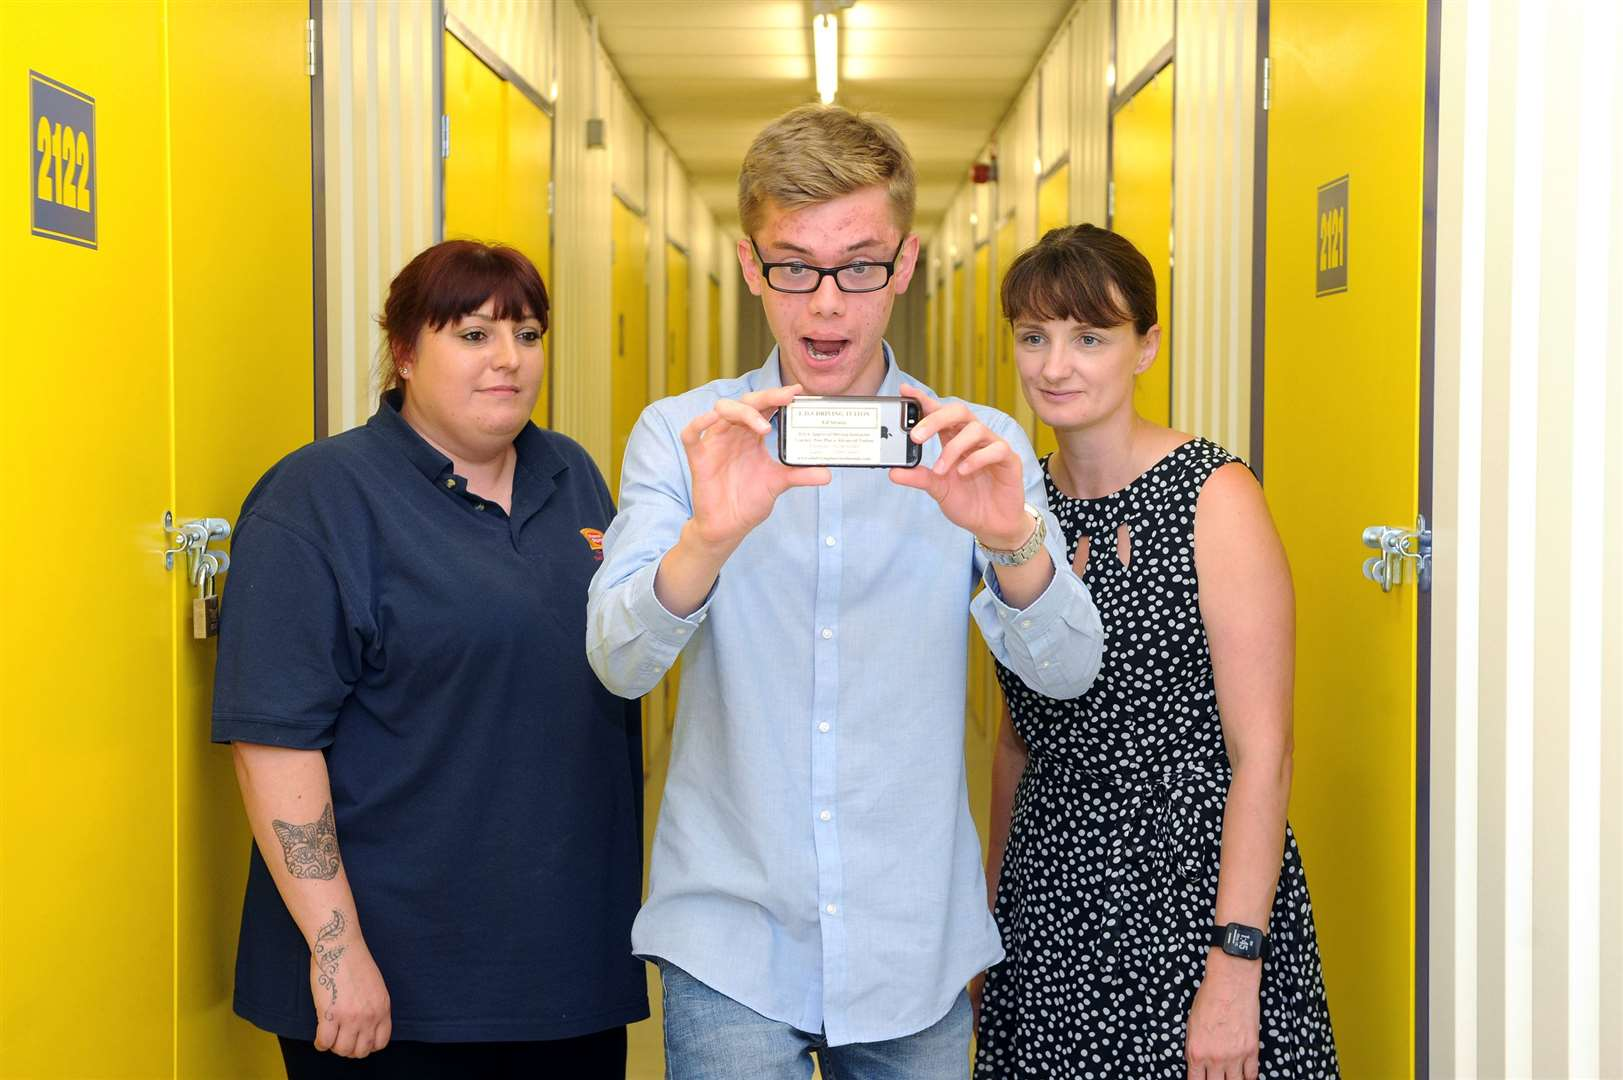 Hana Sculpher, assistant manager at Homestore, student Daniel Bellamy, who shot the film on his iPhone, and Liza Ollett, subject leader for film studies at King Edward VI School. Picture by Mecha Morton.